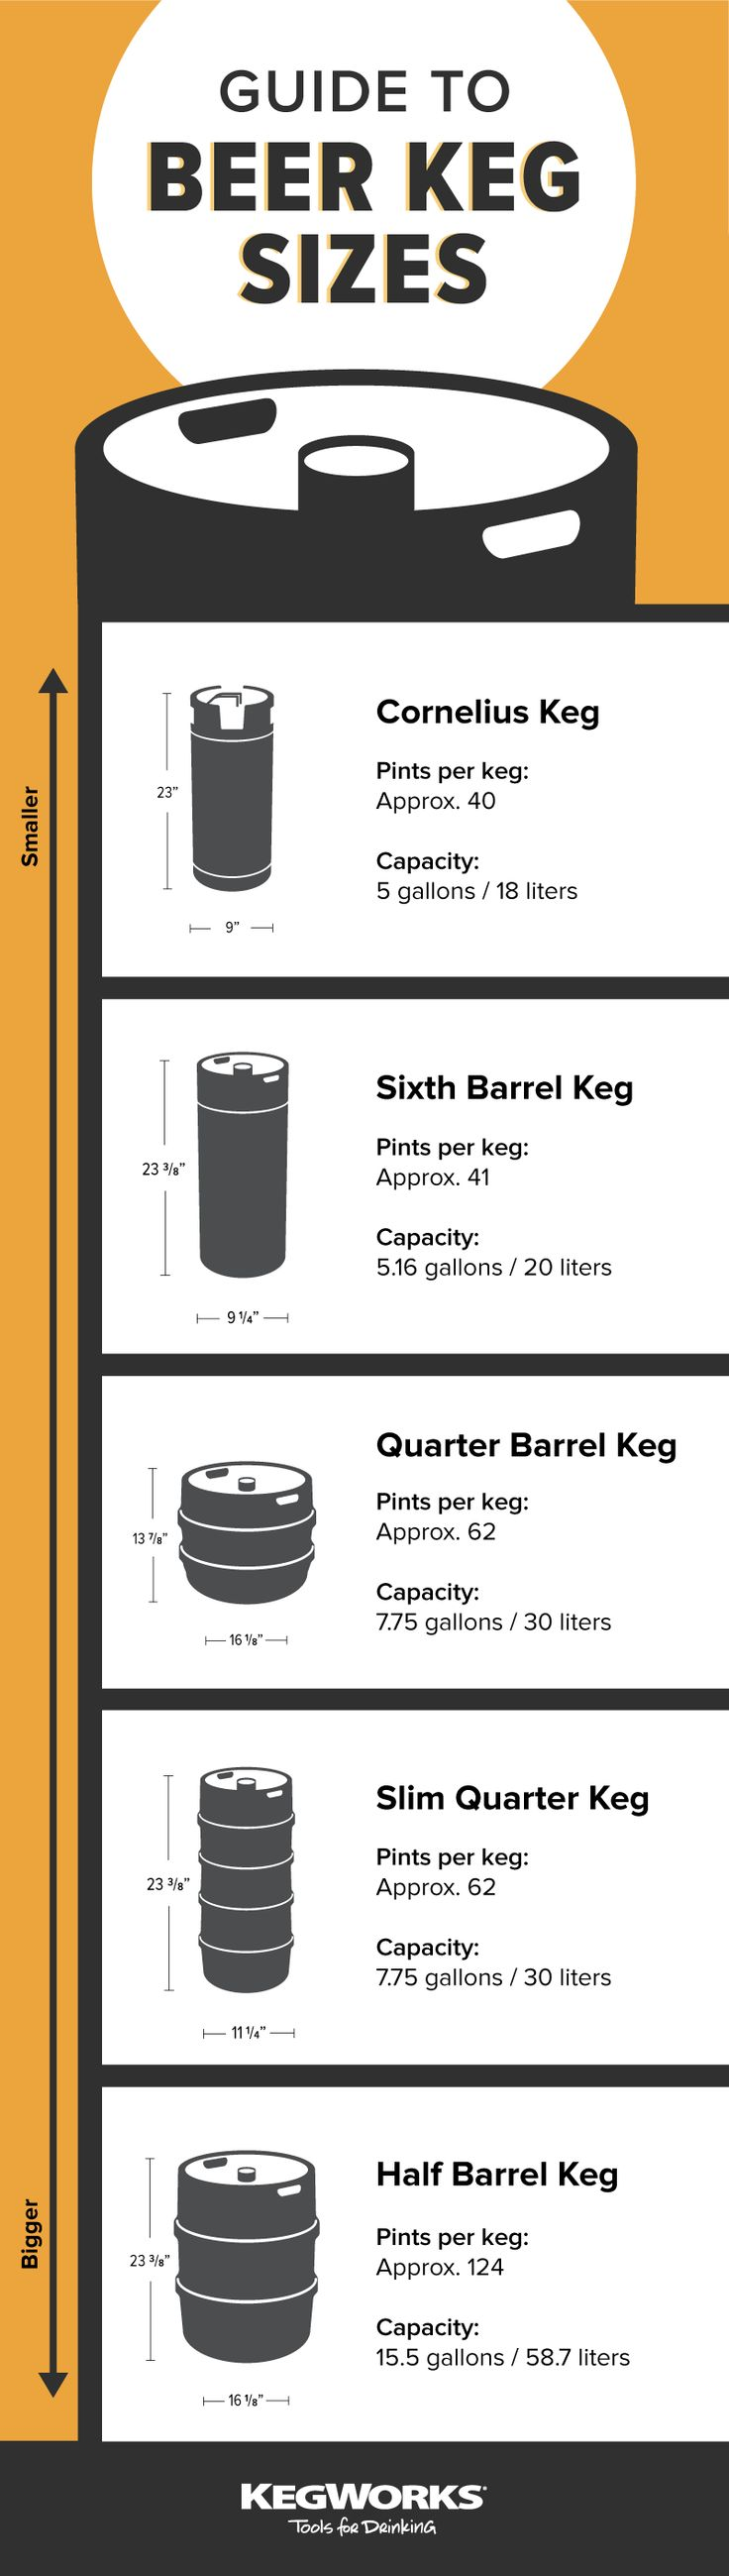 Different keg sizes have different purposes and will be used in different situations.